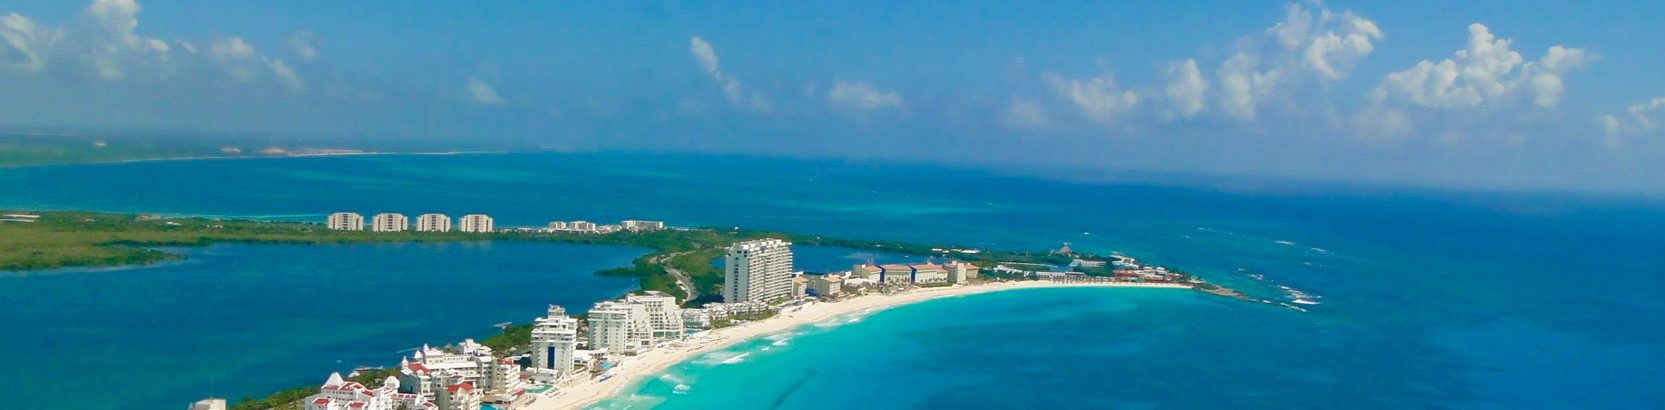 Transfer from Airport Cancun to Hotel Zone